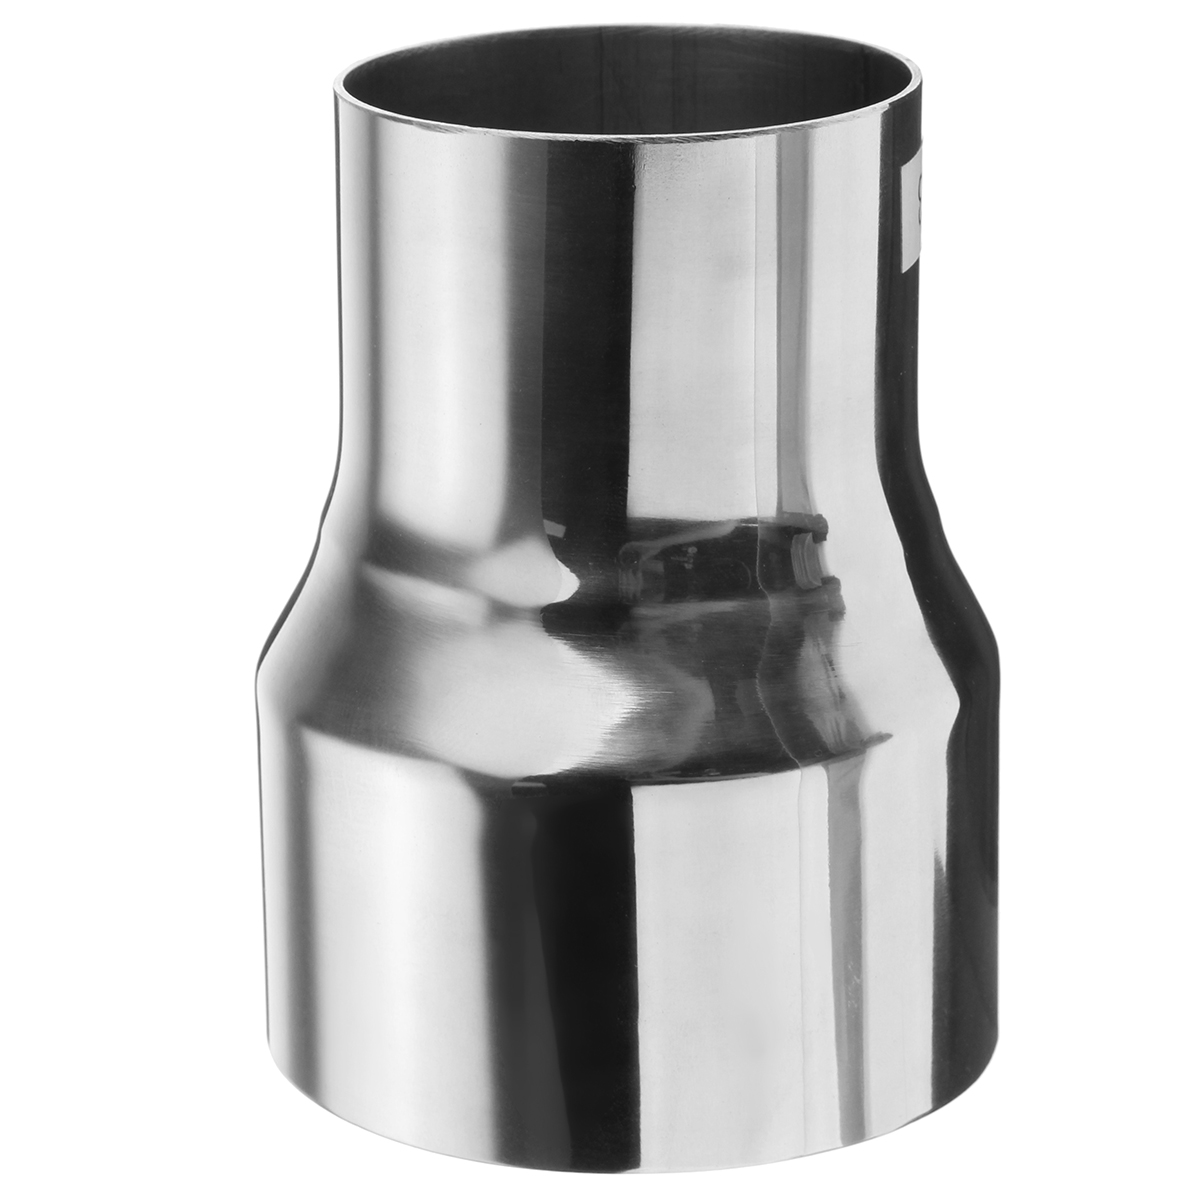 76.2mm to 57.6mm Stainless Exhaust Pipe to Component Adapter Reducer Connector Pipe Tube